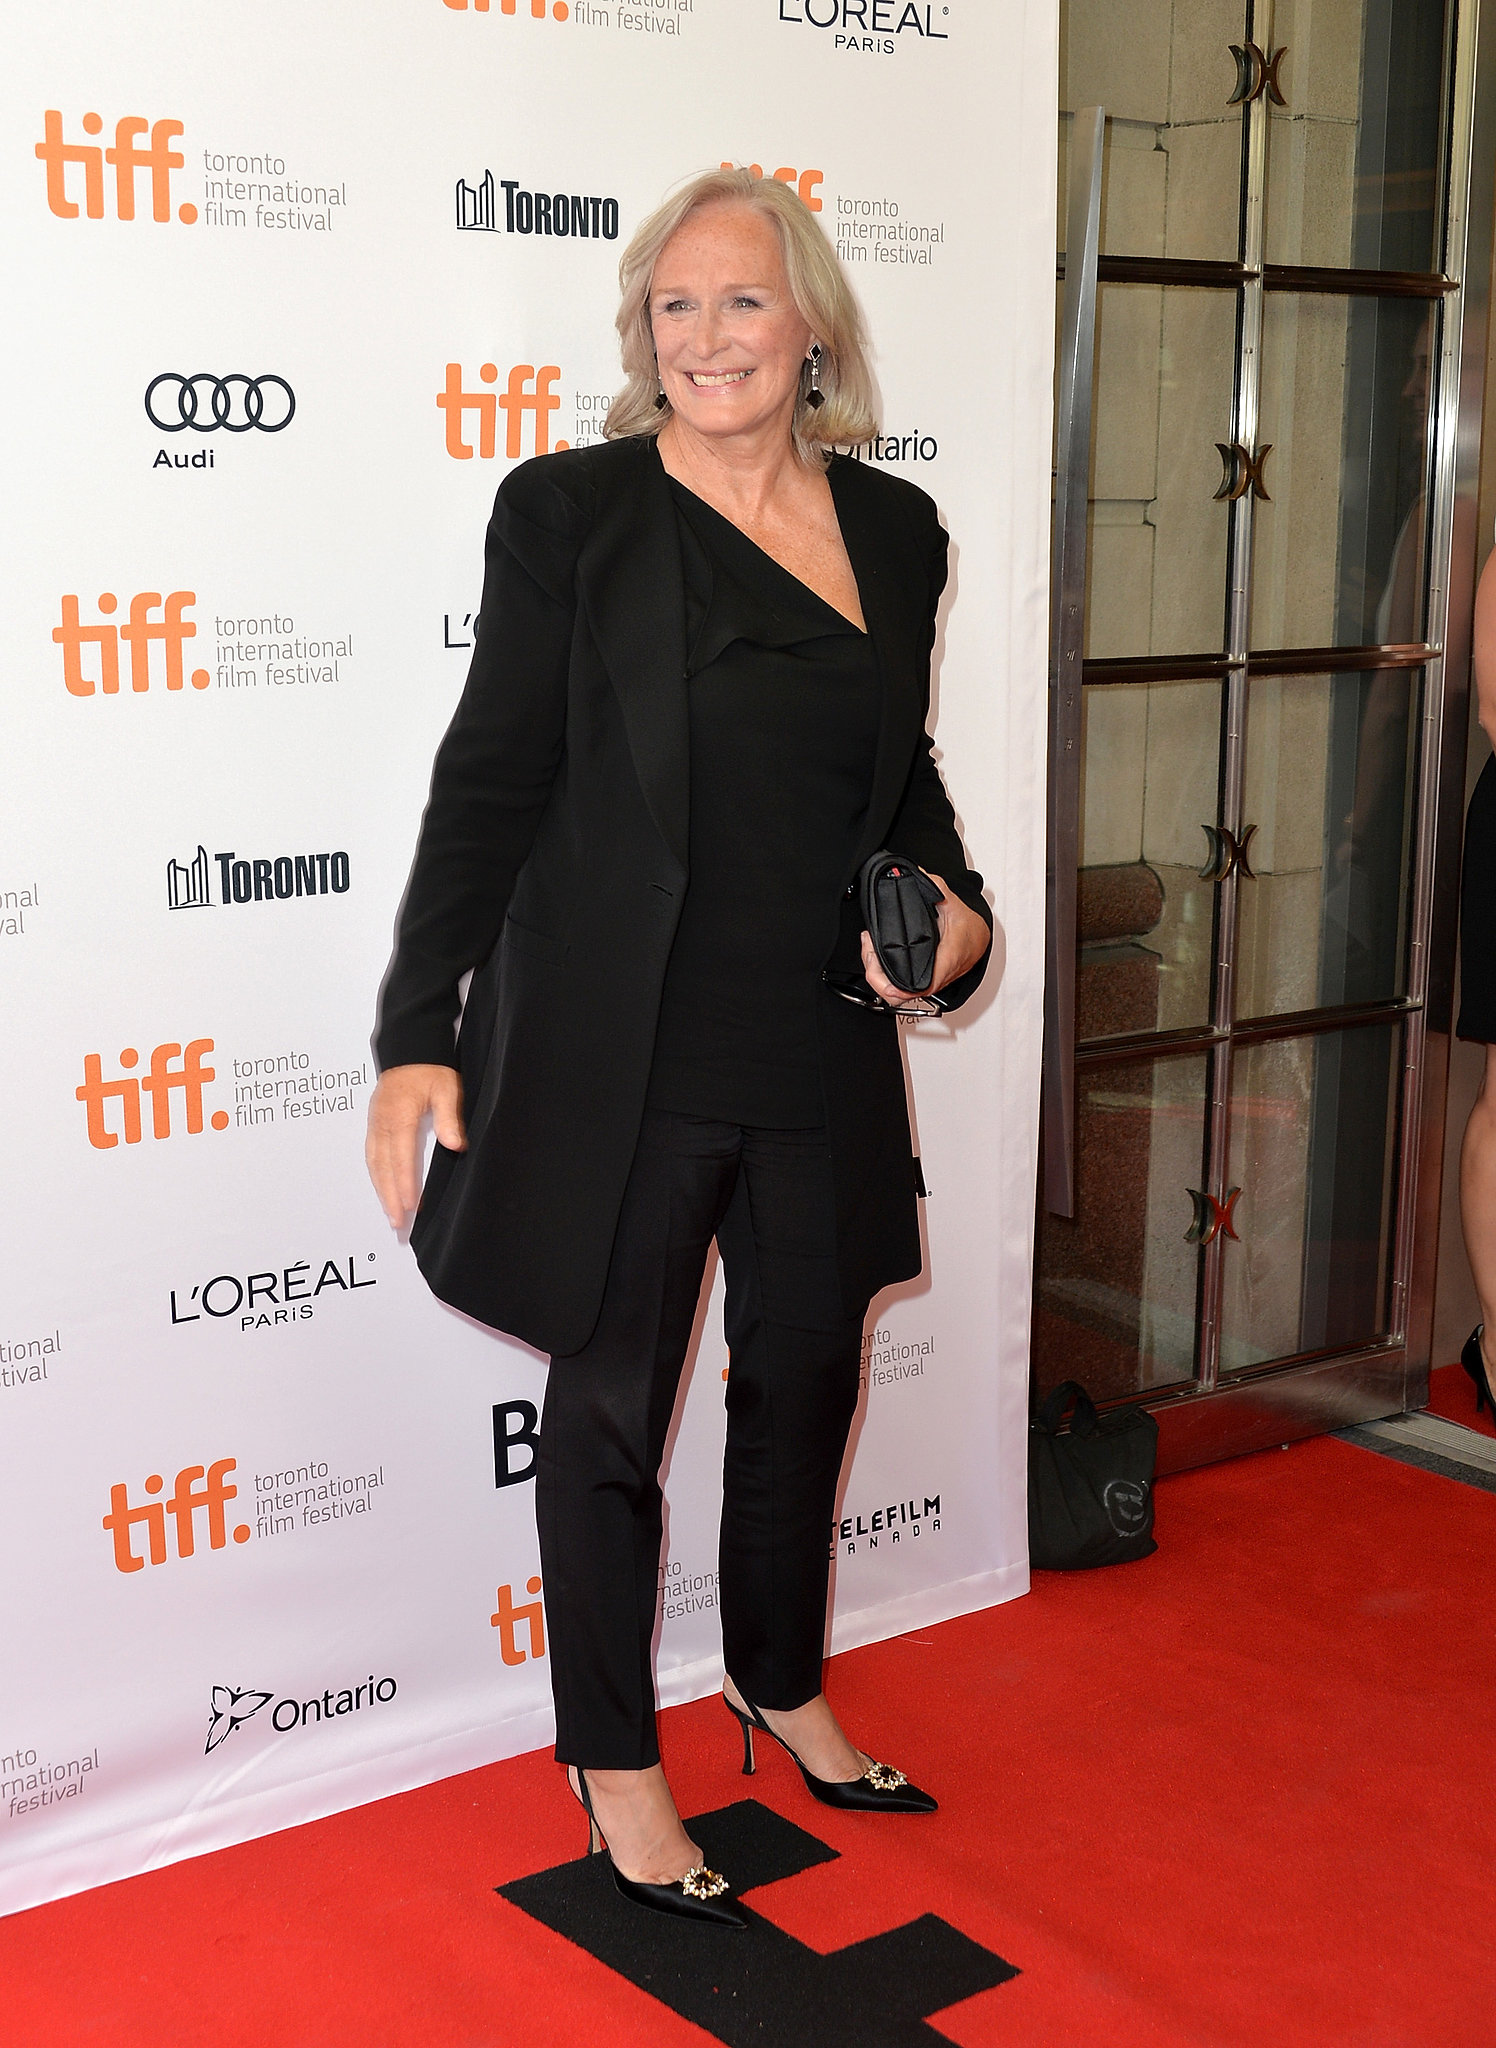 Glenn Close wore black to a special 30th anniversary screening of The Big Chill.